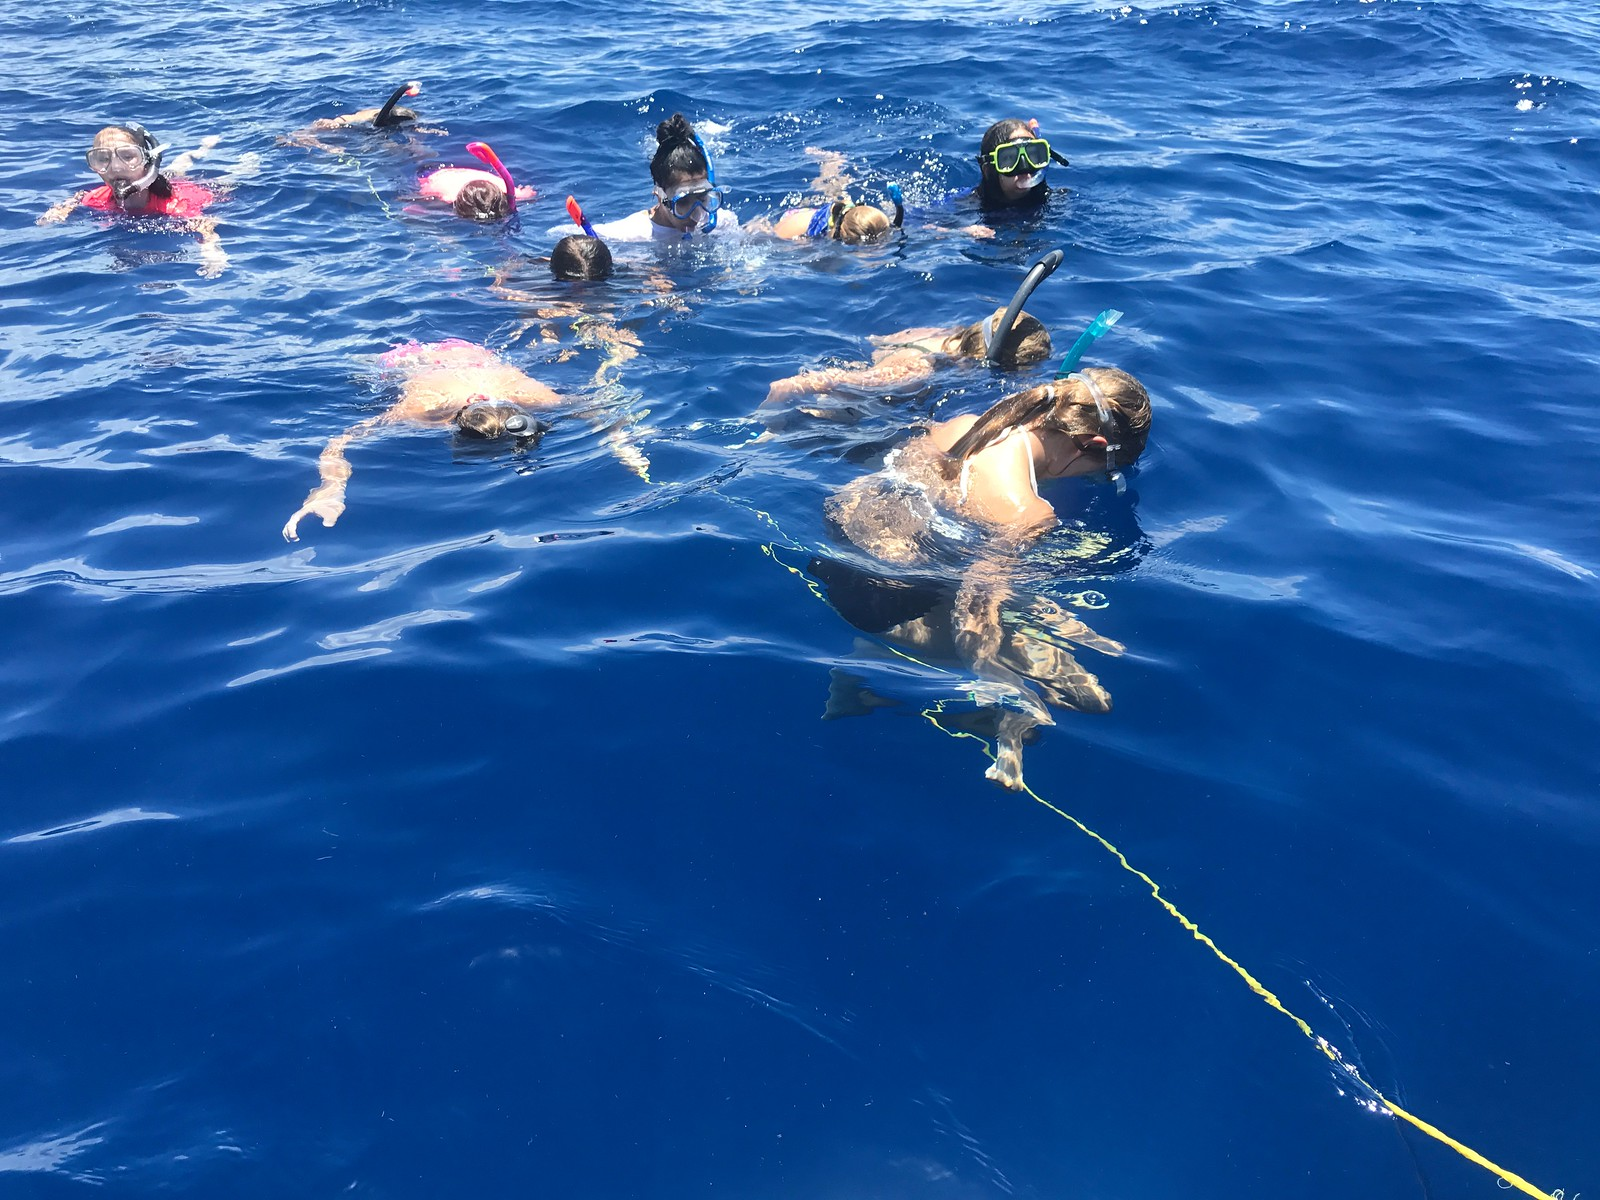 """Snorkeling in the """"Deep Blue"""", where the ocean is 450 feet deep, was a favorite activity among participants."""